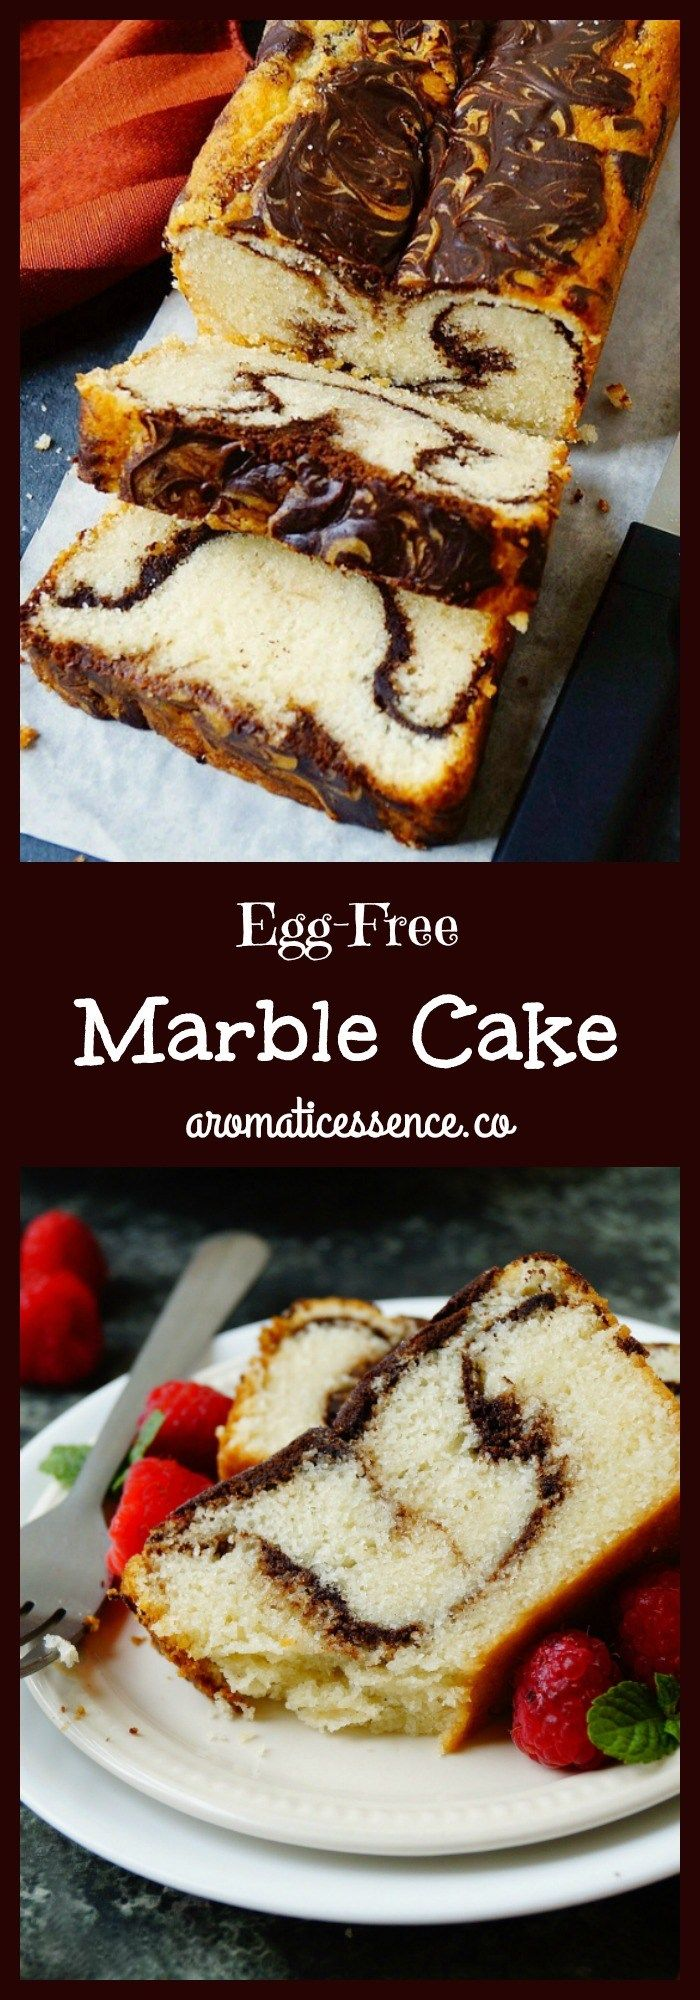 Eggless Marble Cake How To Make Eggless Marble Cake Recipe Recipes Faire Soi Meme